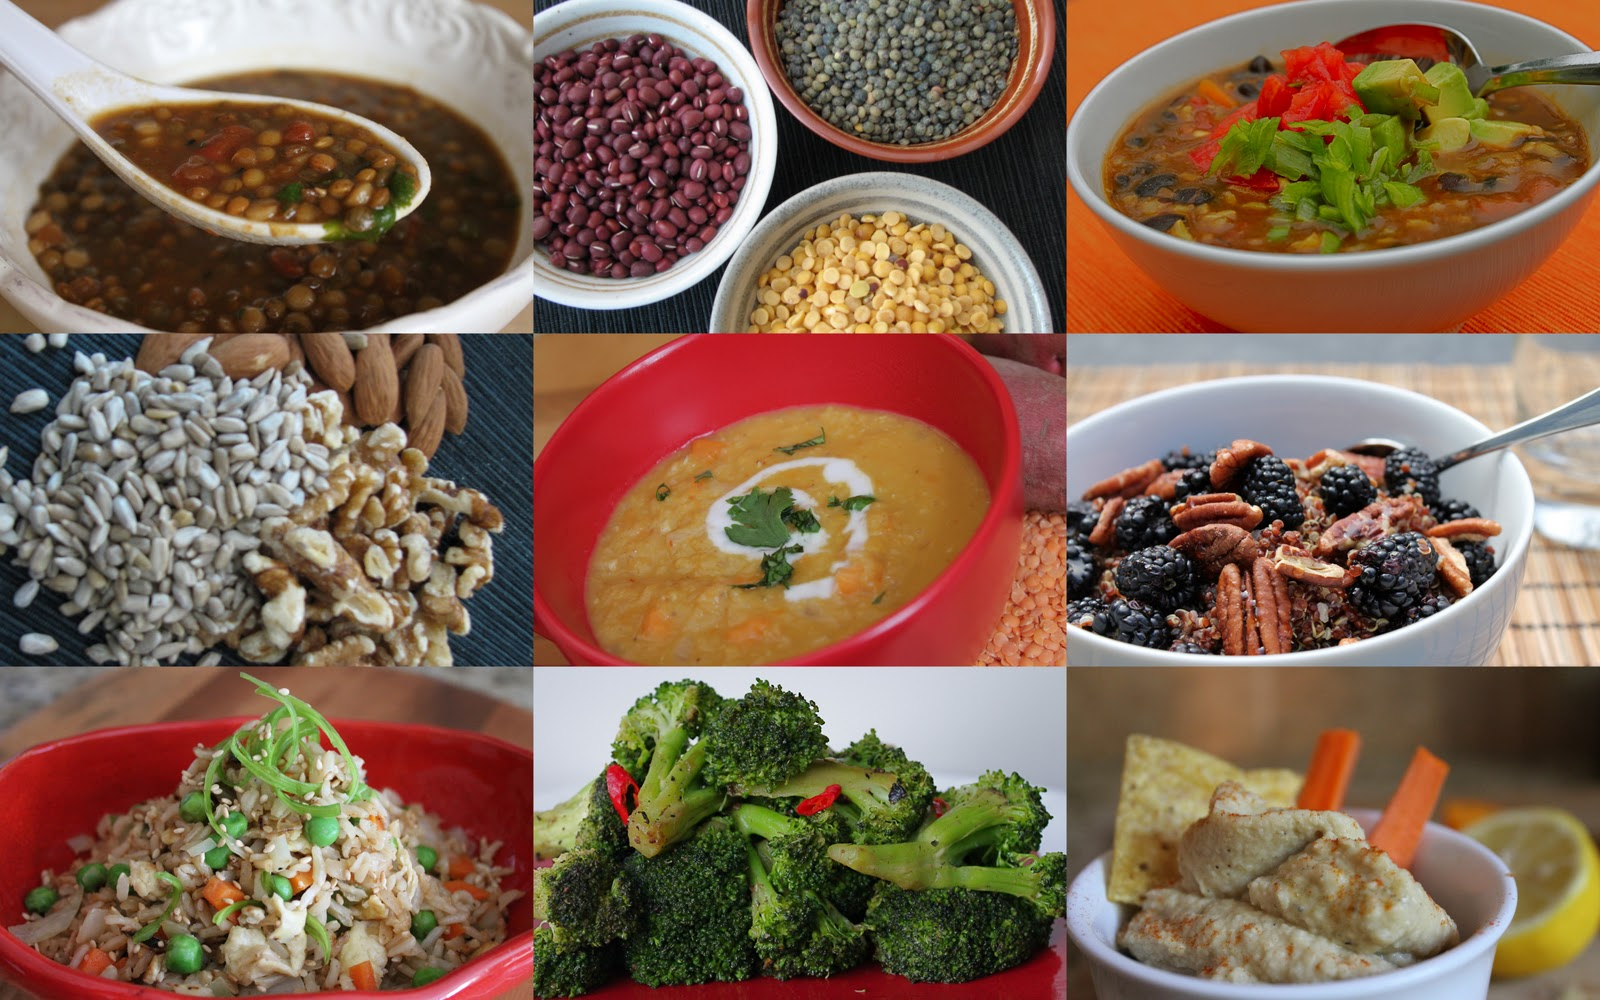 8 ways to add fiber to your diet a smoky black bean dip recipe high fiber foods forumfinder Images